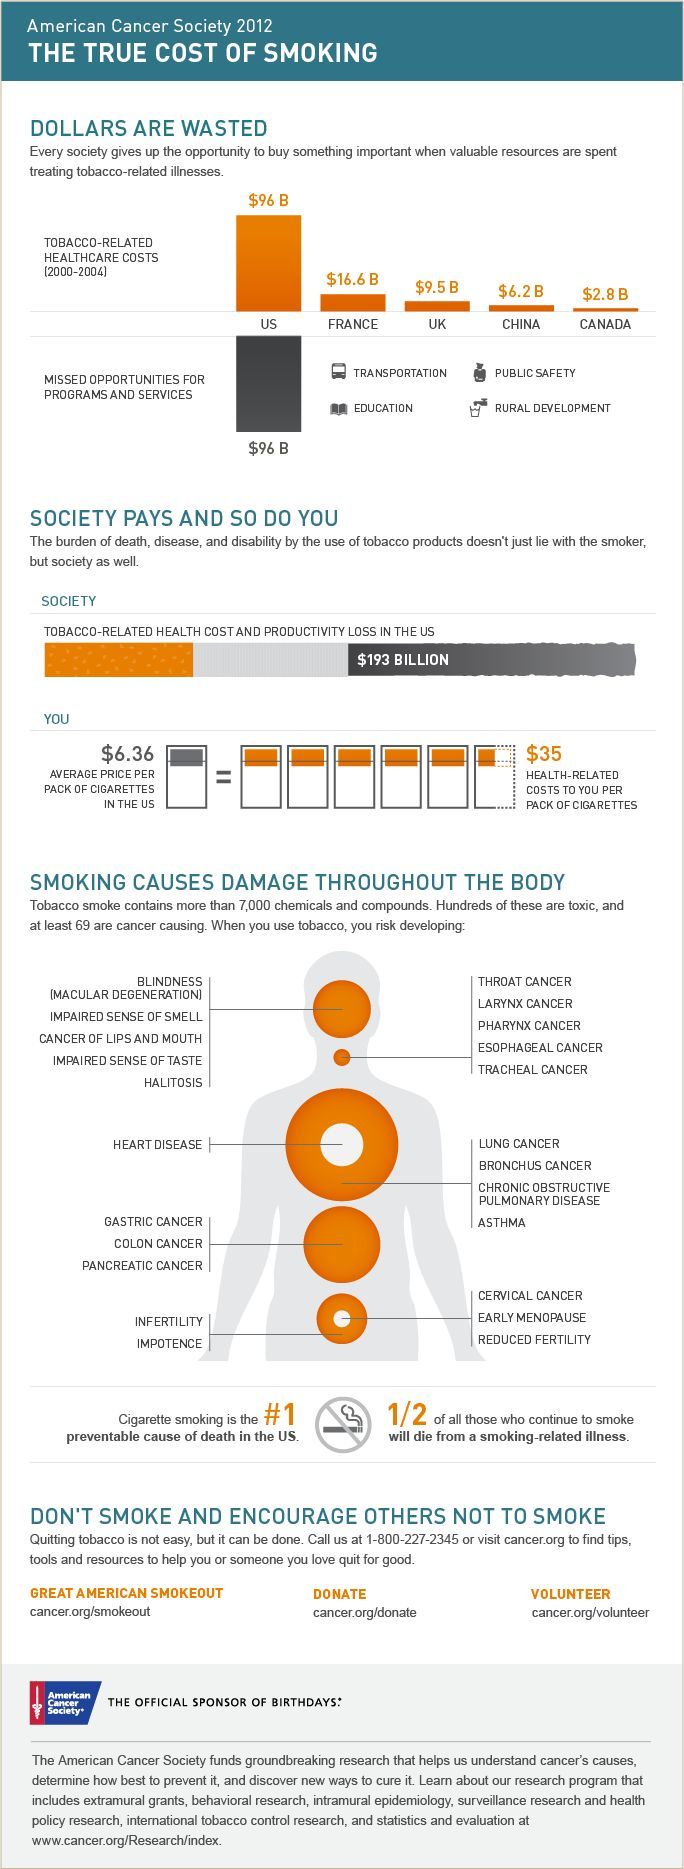 The true cost of smoking from the American Cancer Society